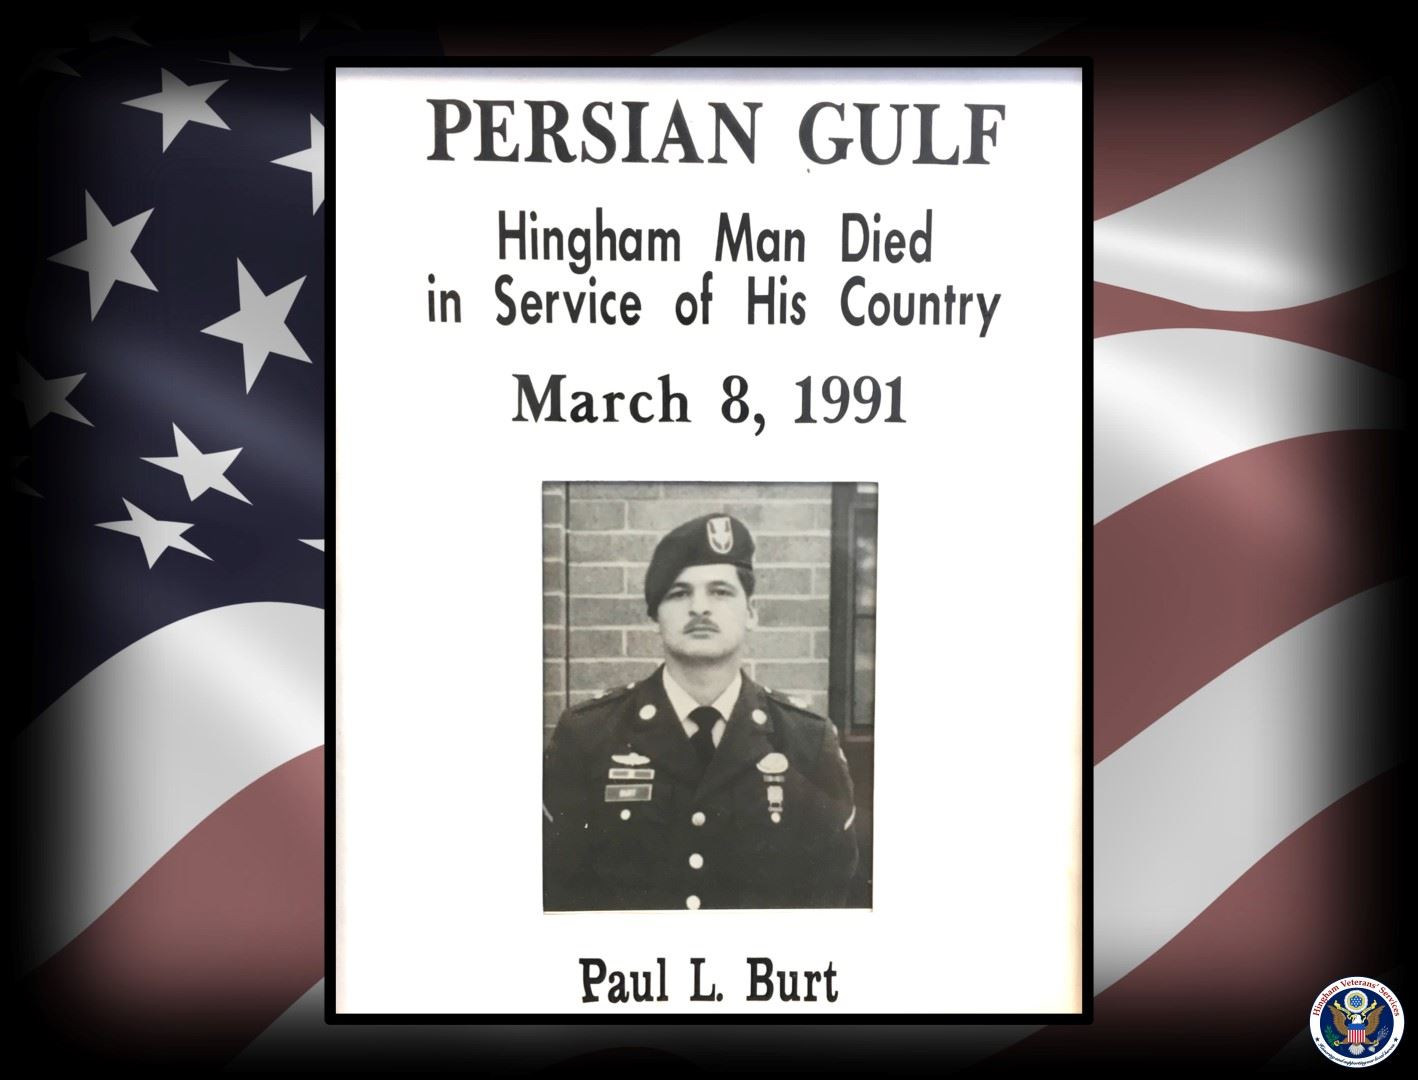 Photo of Sgt. Paul L. Burt